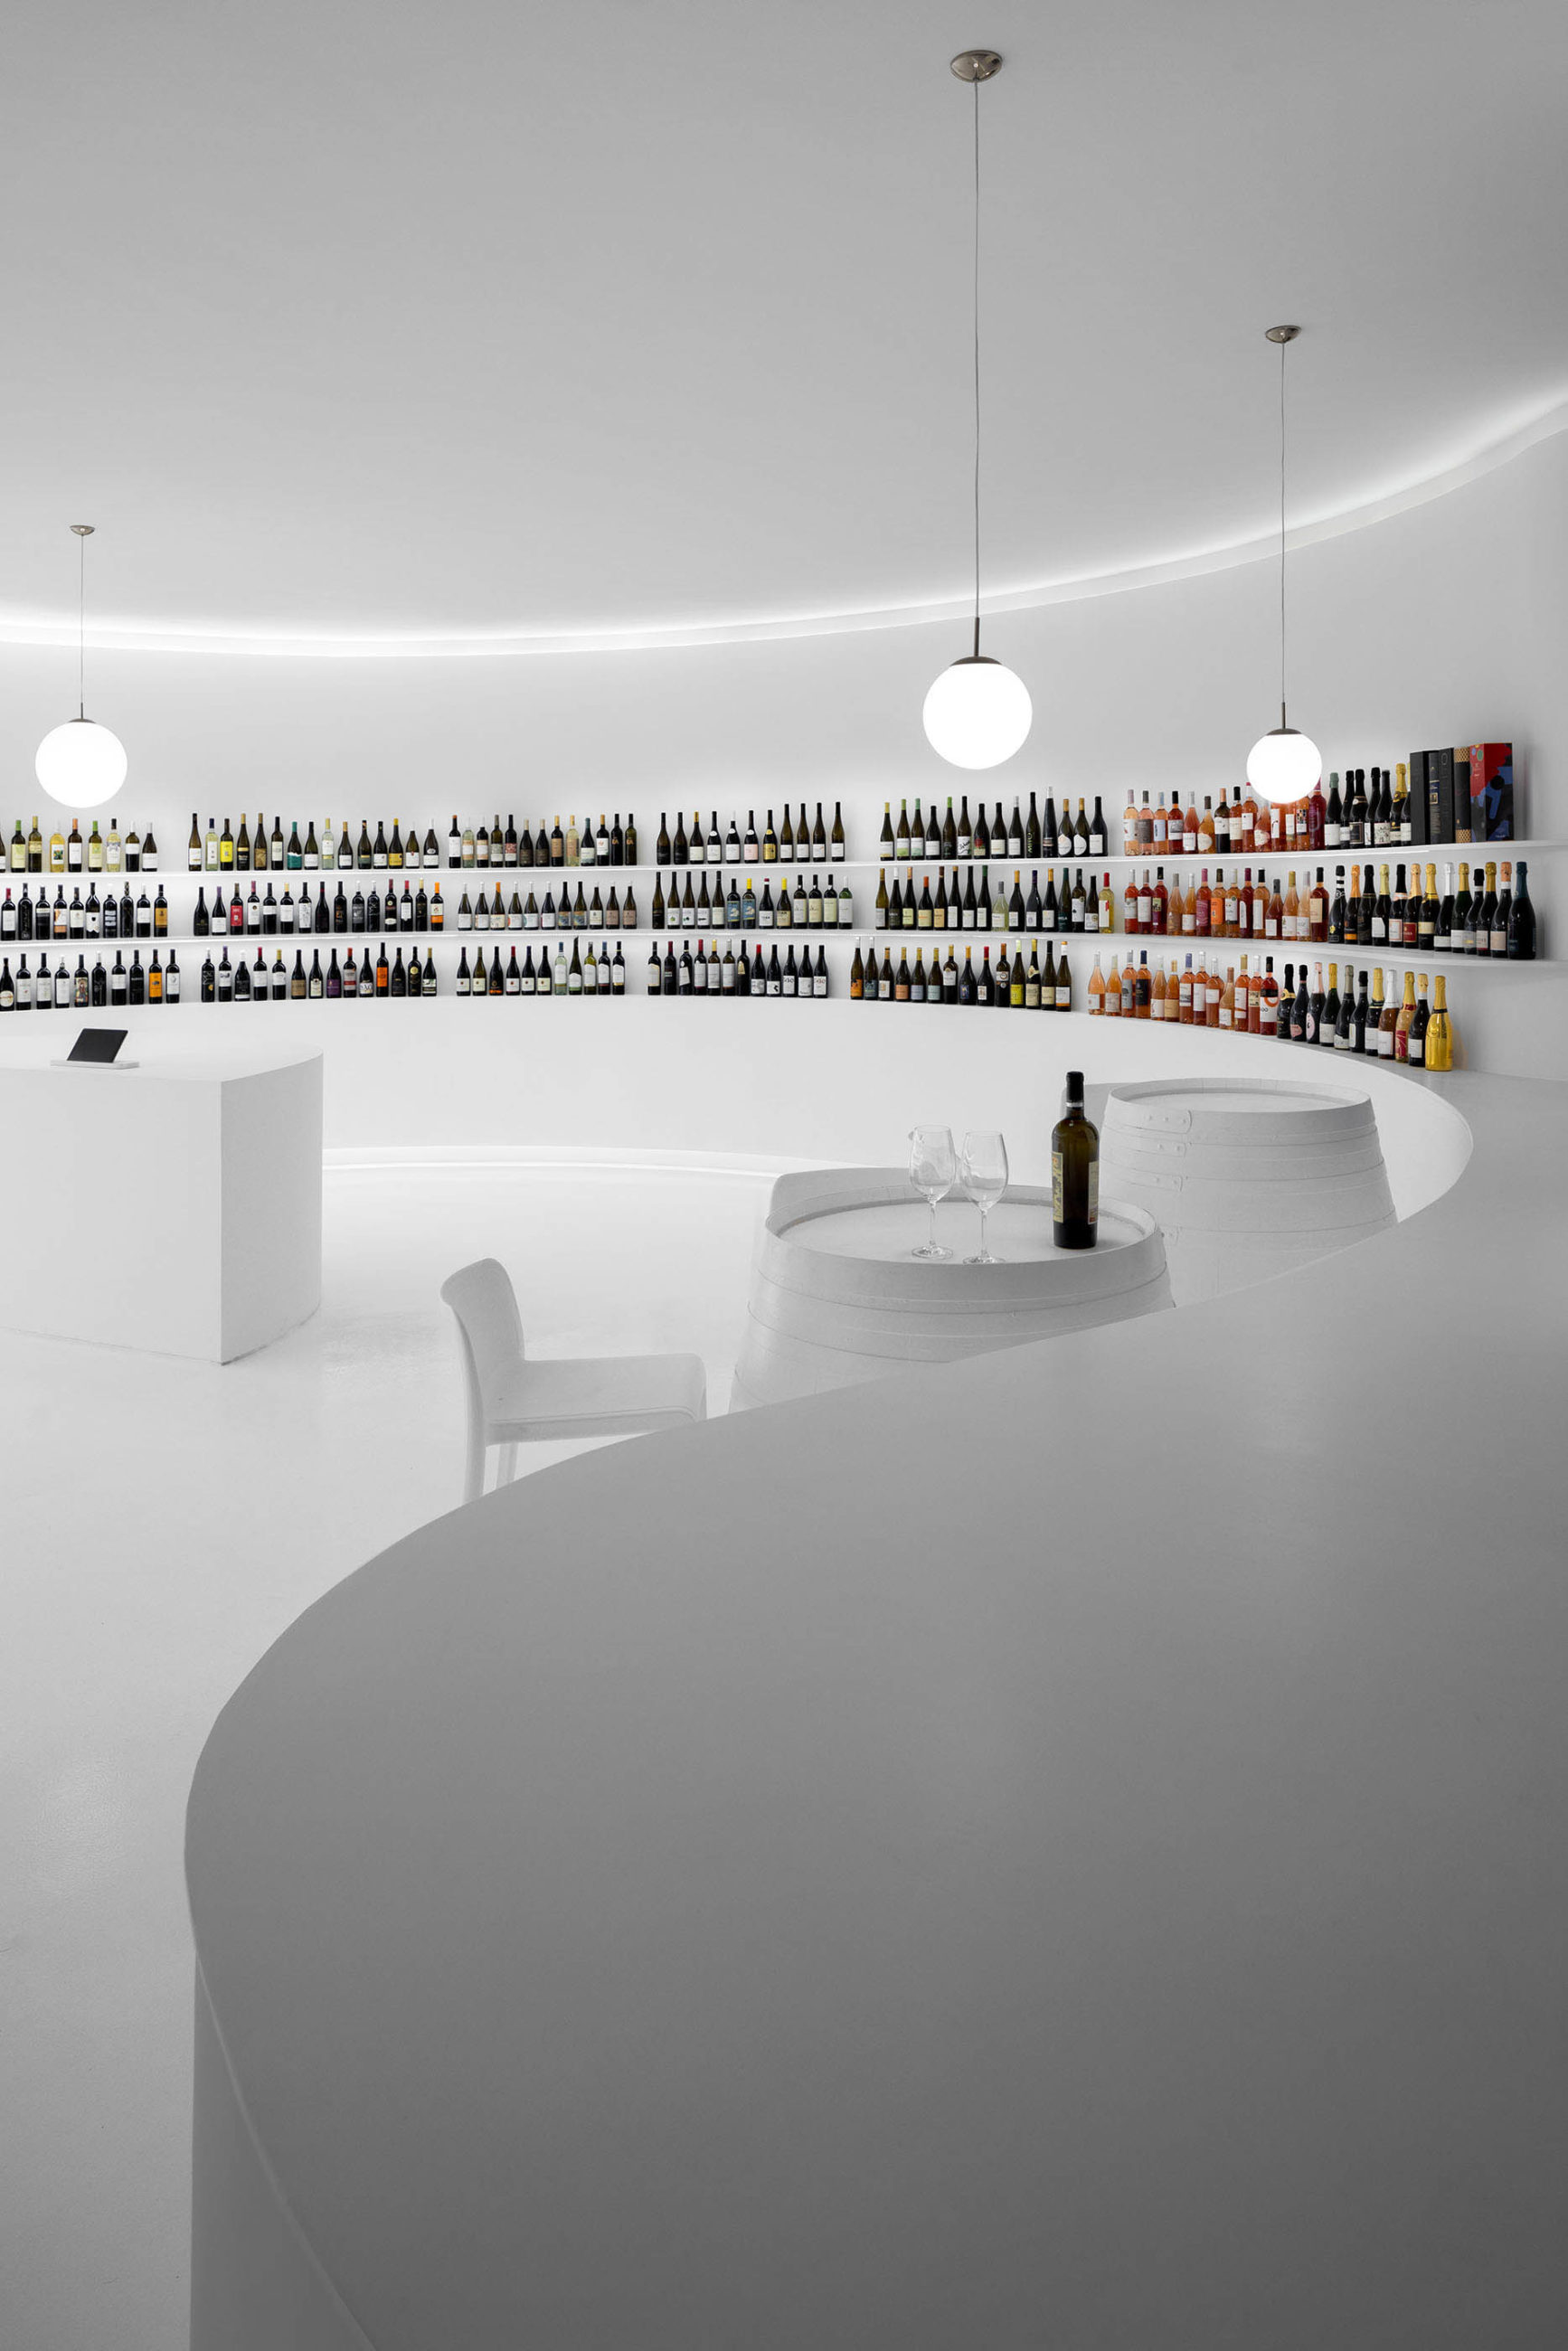 Portugal Vineyards wine store at Hipercentro Areosa in Porto by the architecture office Porto Architects with architectural photography by Ivo Tavares Studio